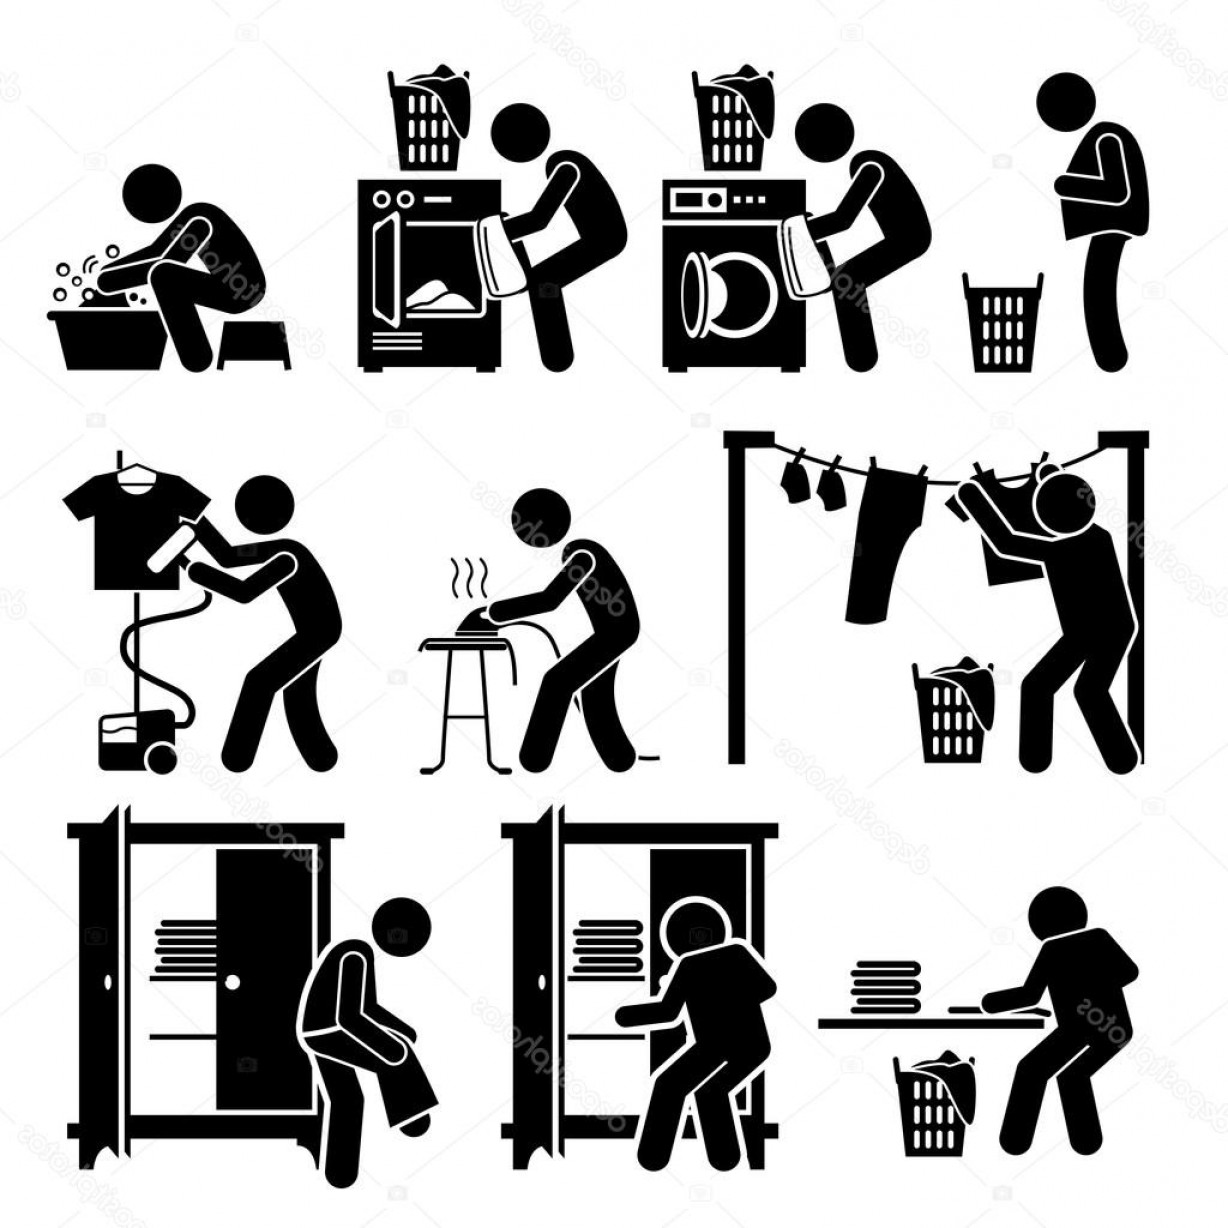 Clothes For Washing Vector: Stock Illustration Laundry Works Washing Clothes Pictogram